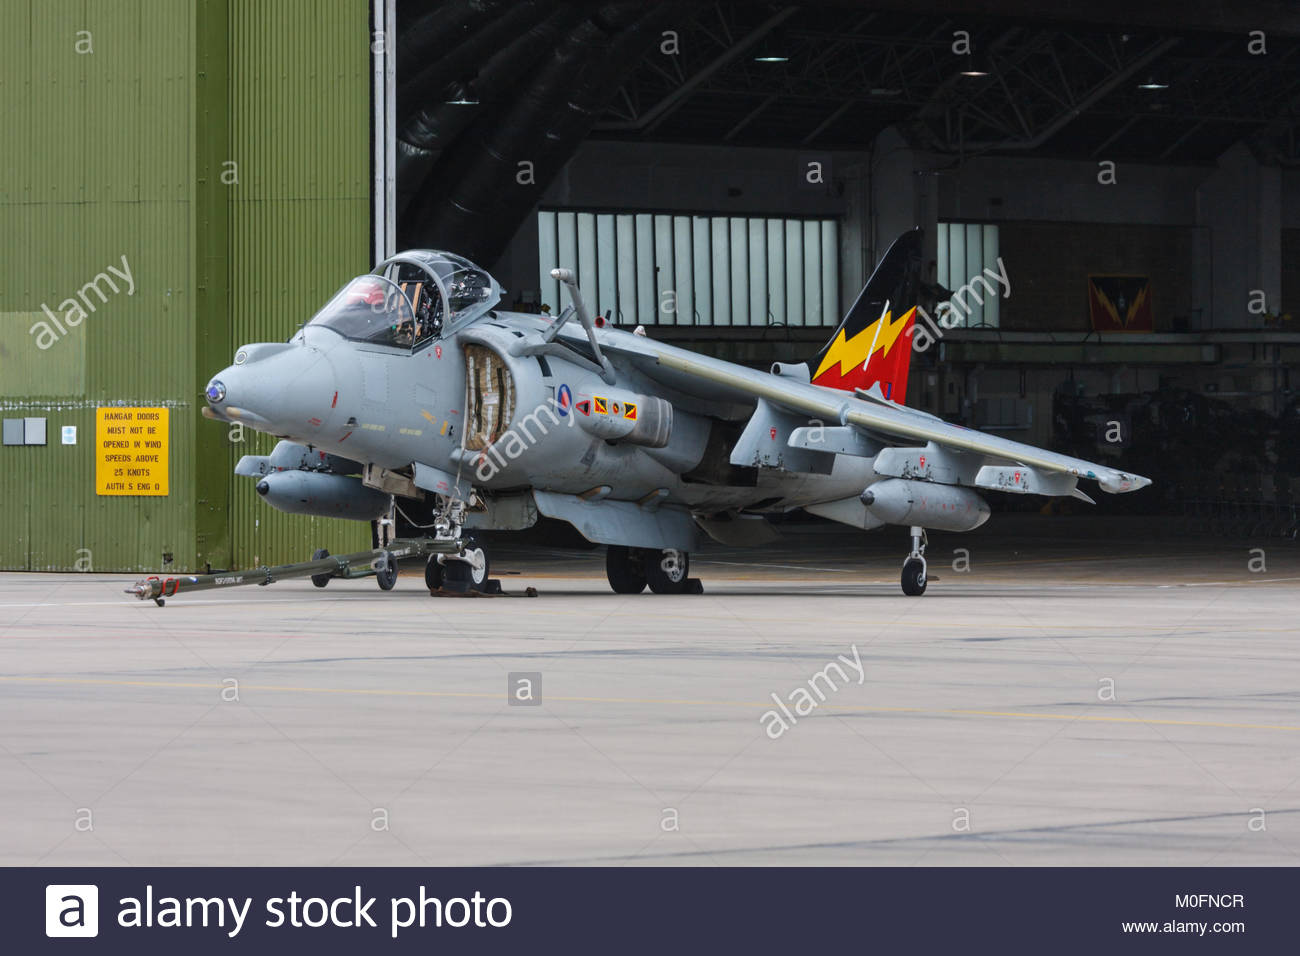 Bae Hawker Siddeley Harrier jet outside a hanger on RAF Wittering air base. Lincolnshire, England, UK - Stock Image